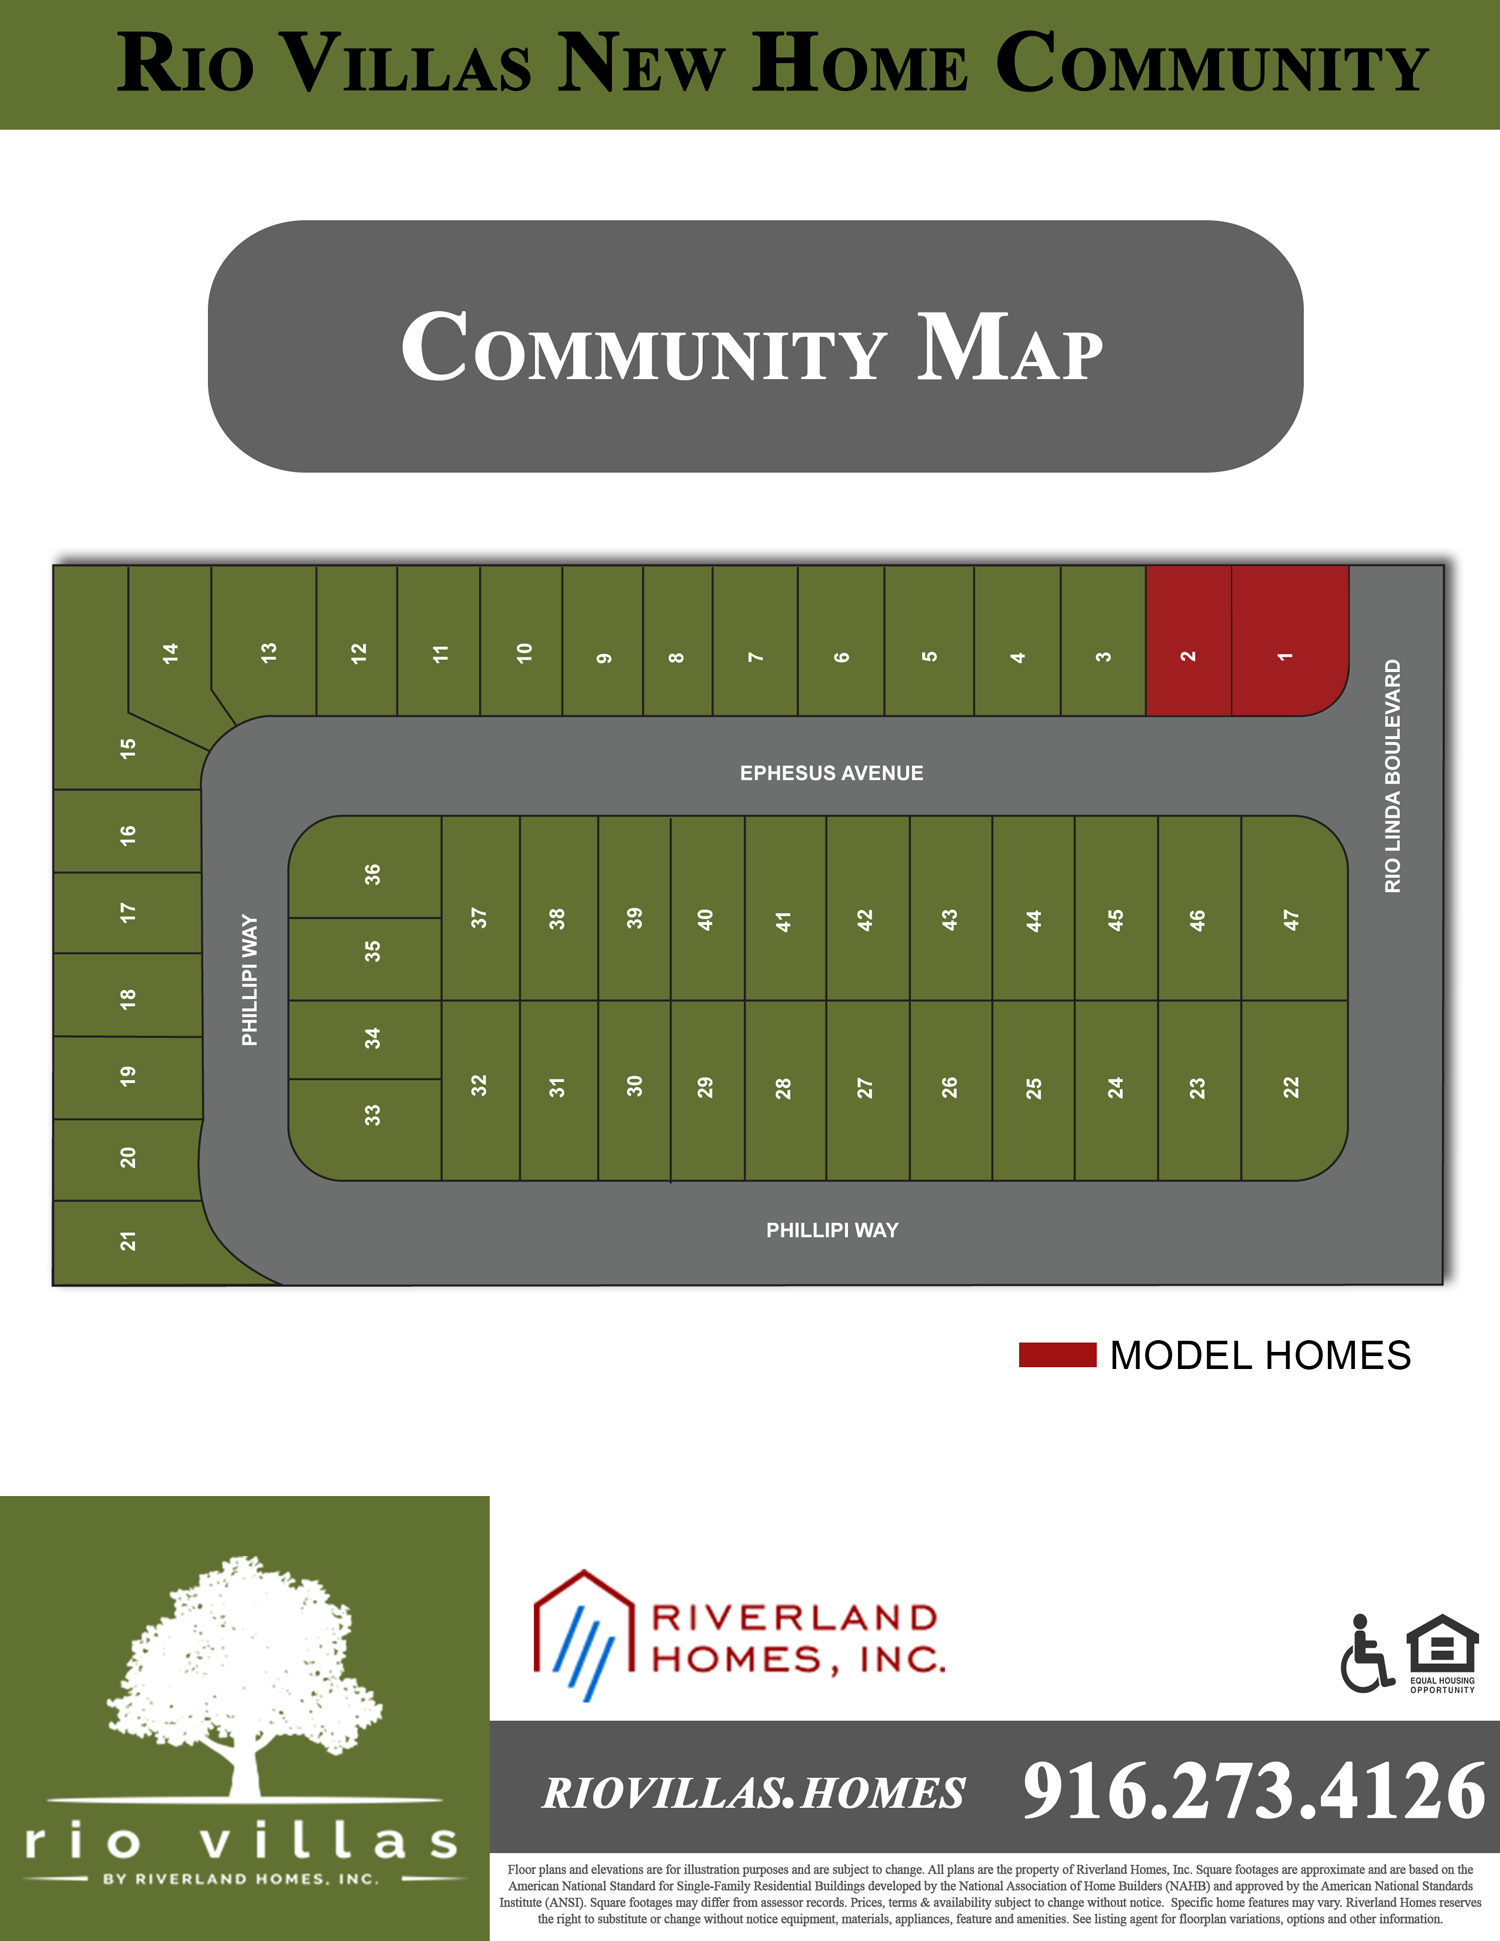 Riverland Homes Properties - Community Map For Rio Villas